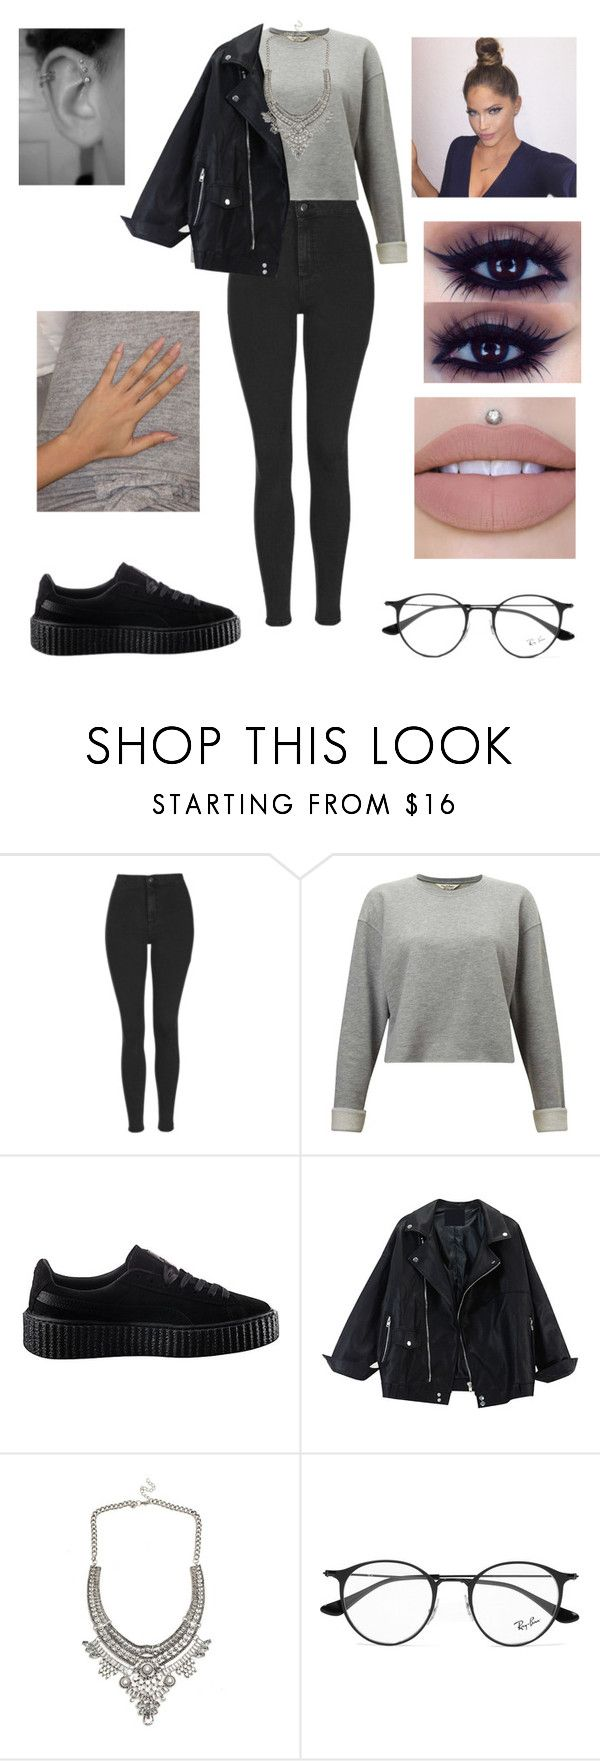 """""""Untitled #3096"""" by vanessa898 ❤ liked on Polyvore featuring Topshop, Miss Selfridge, Puma and Ray-Ban"""